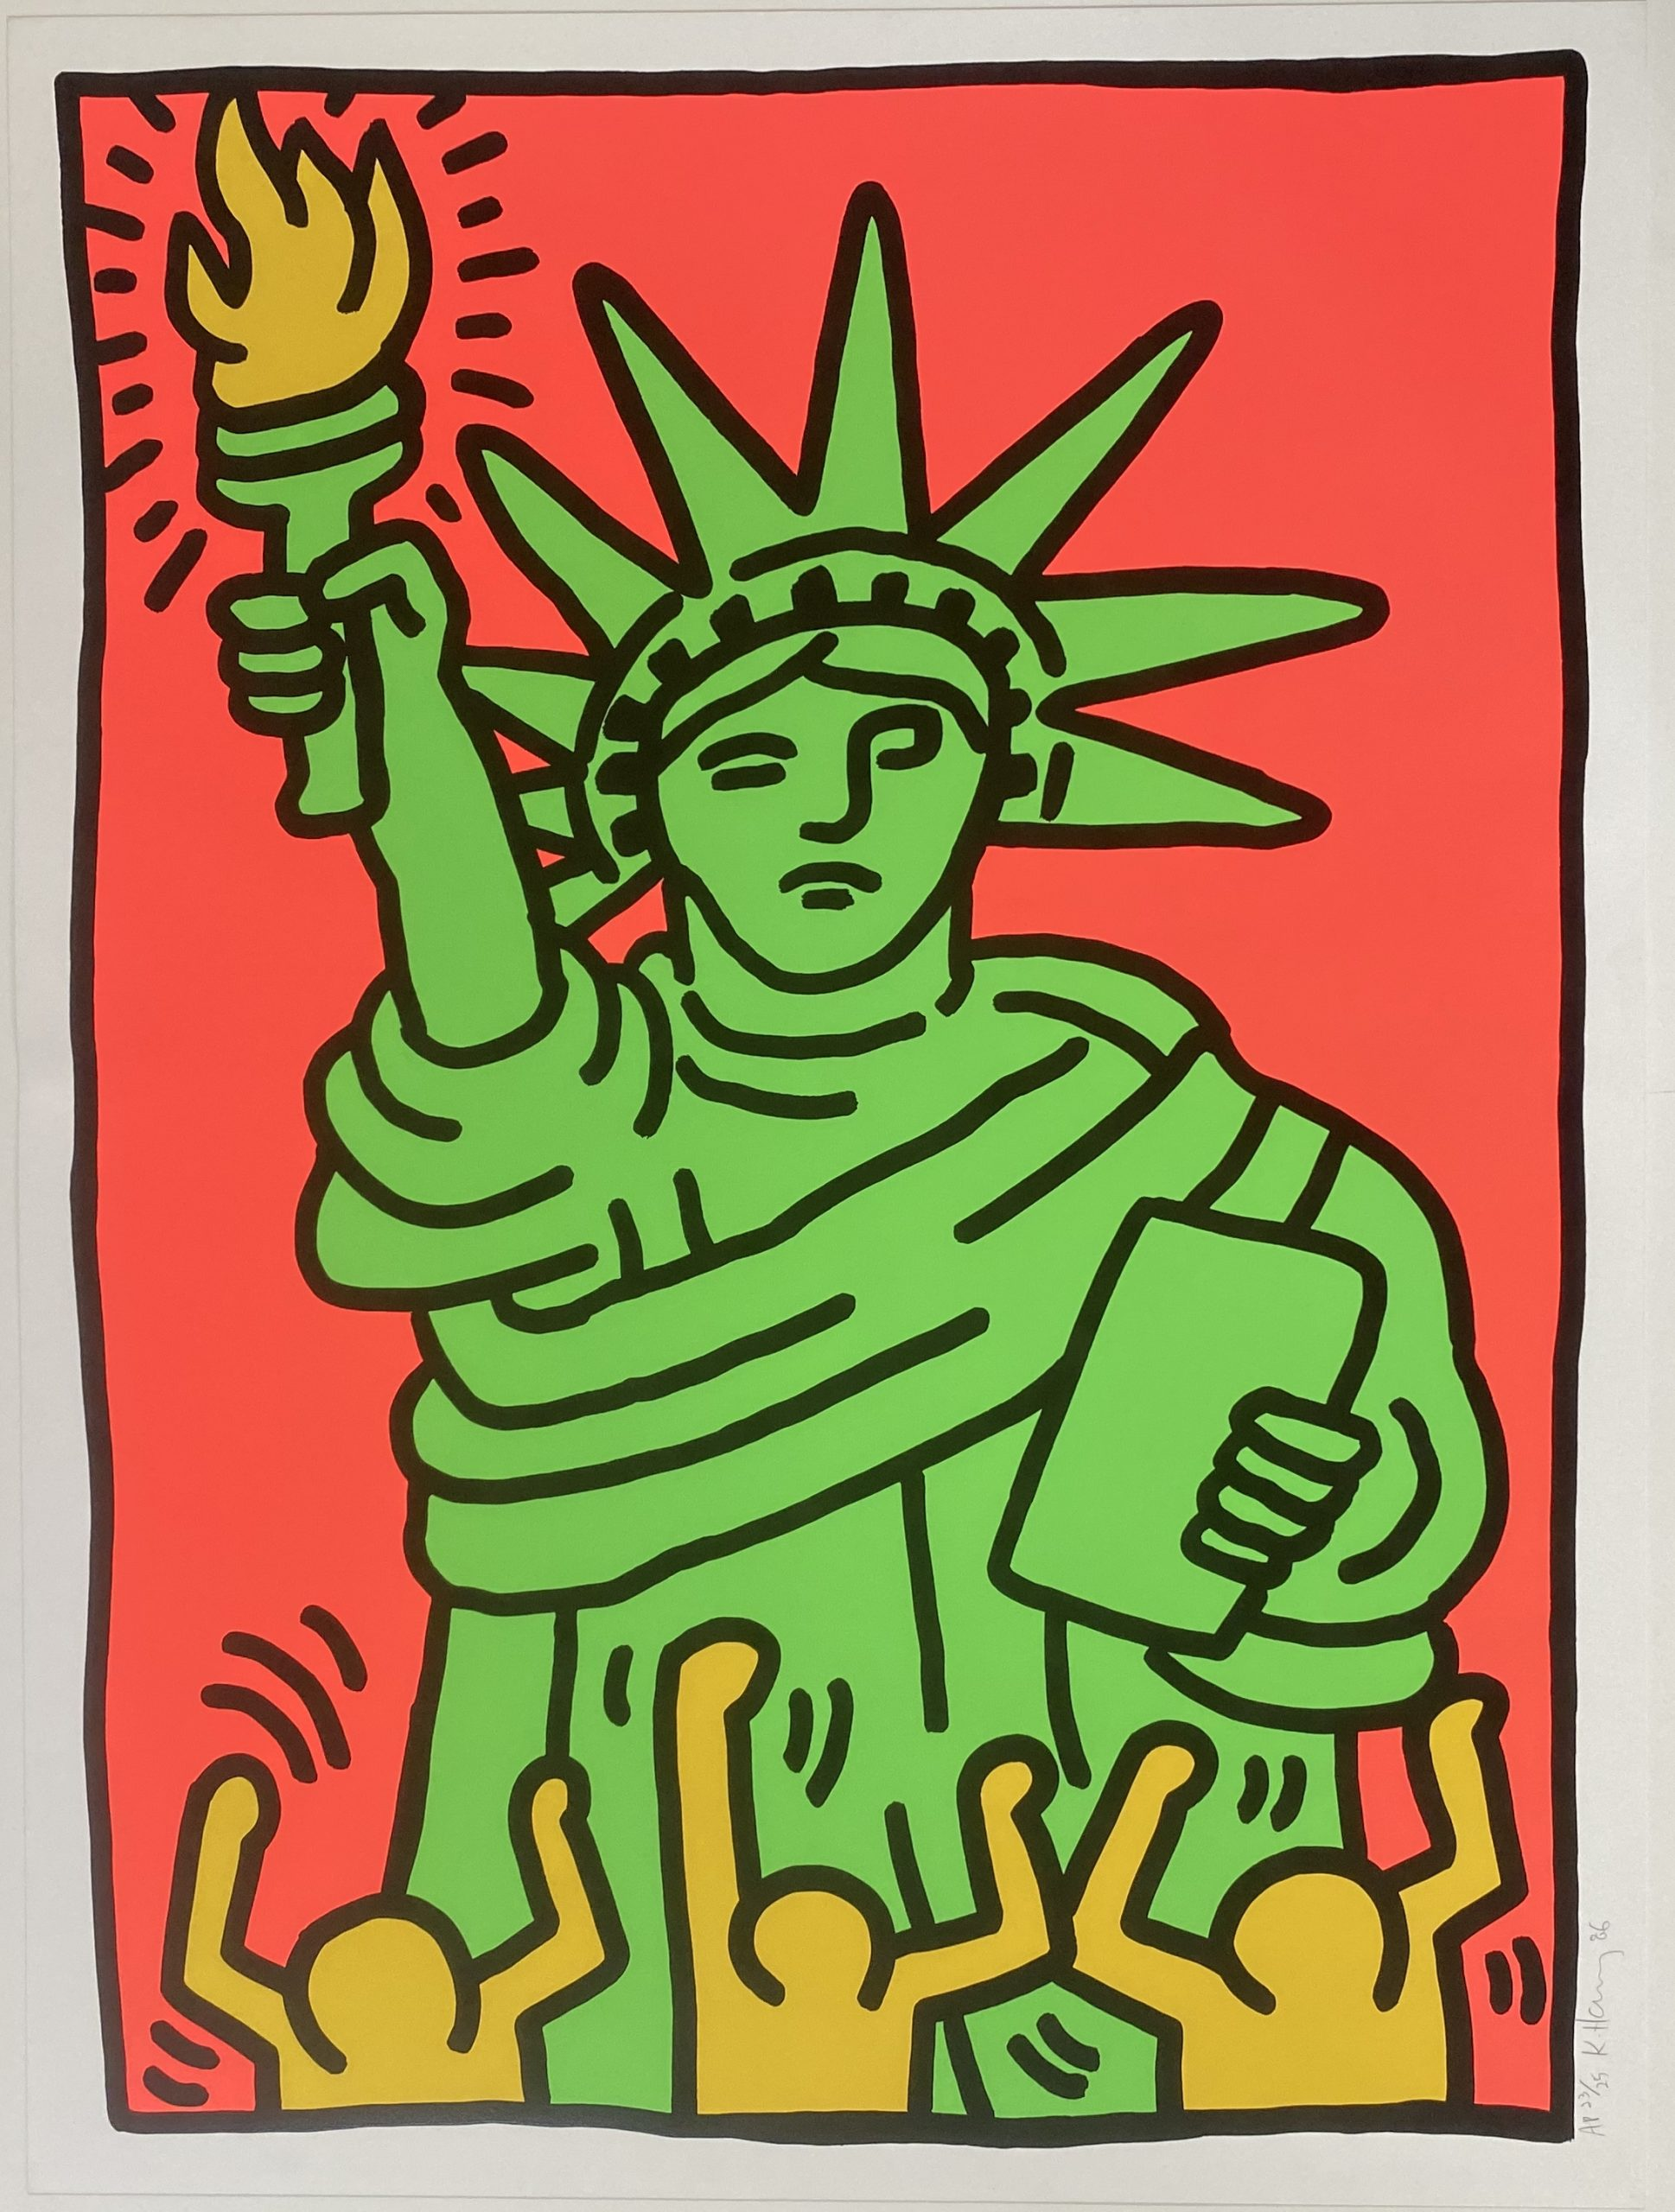 Statue of Liberty 1986 by Keith Haring